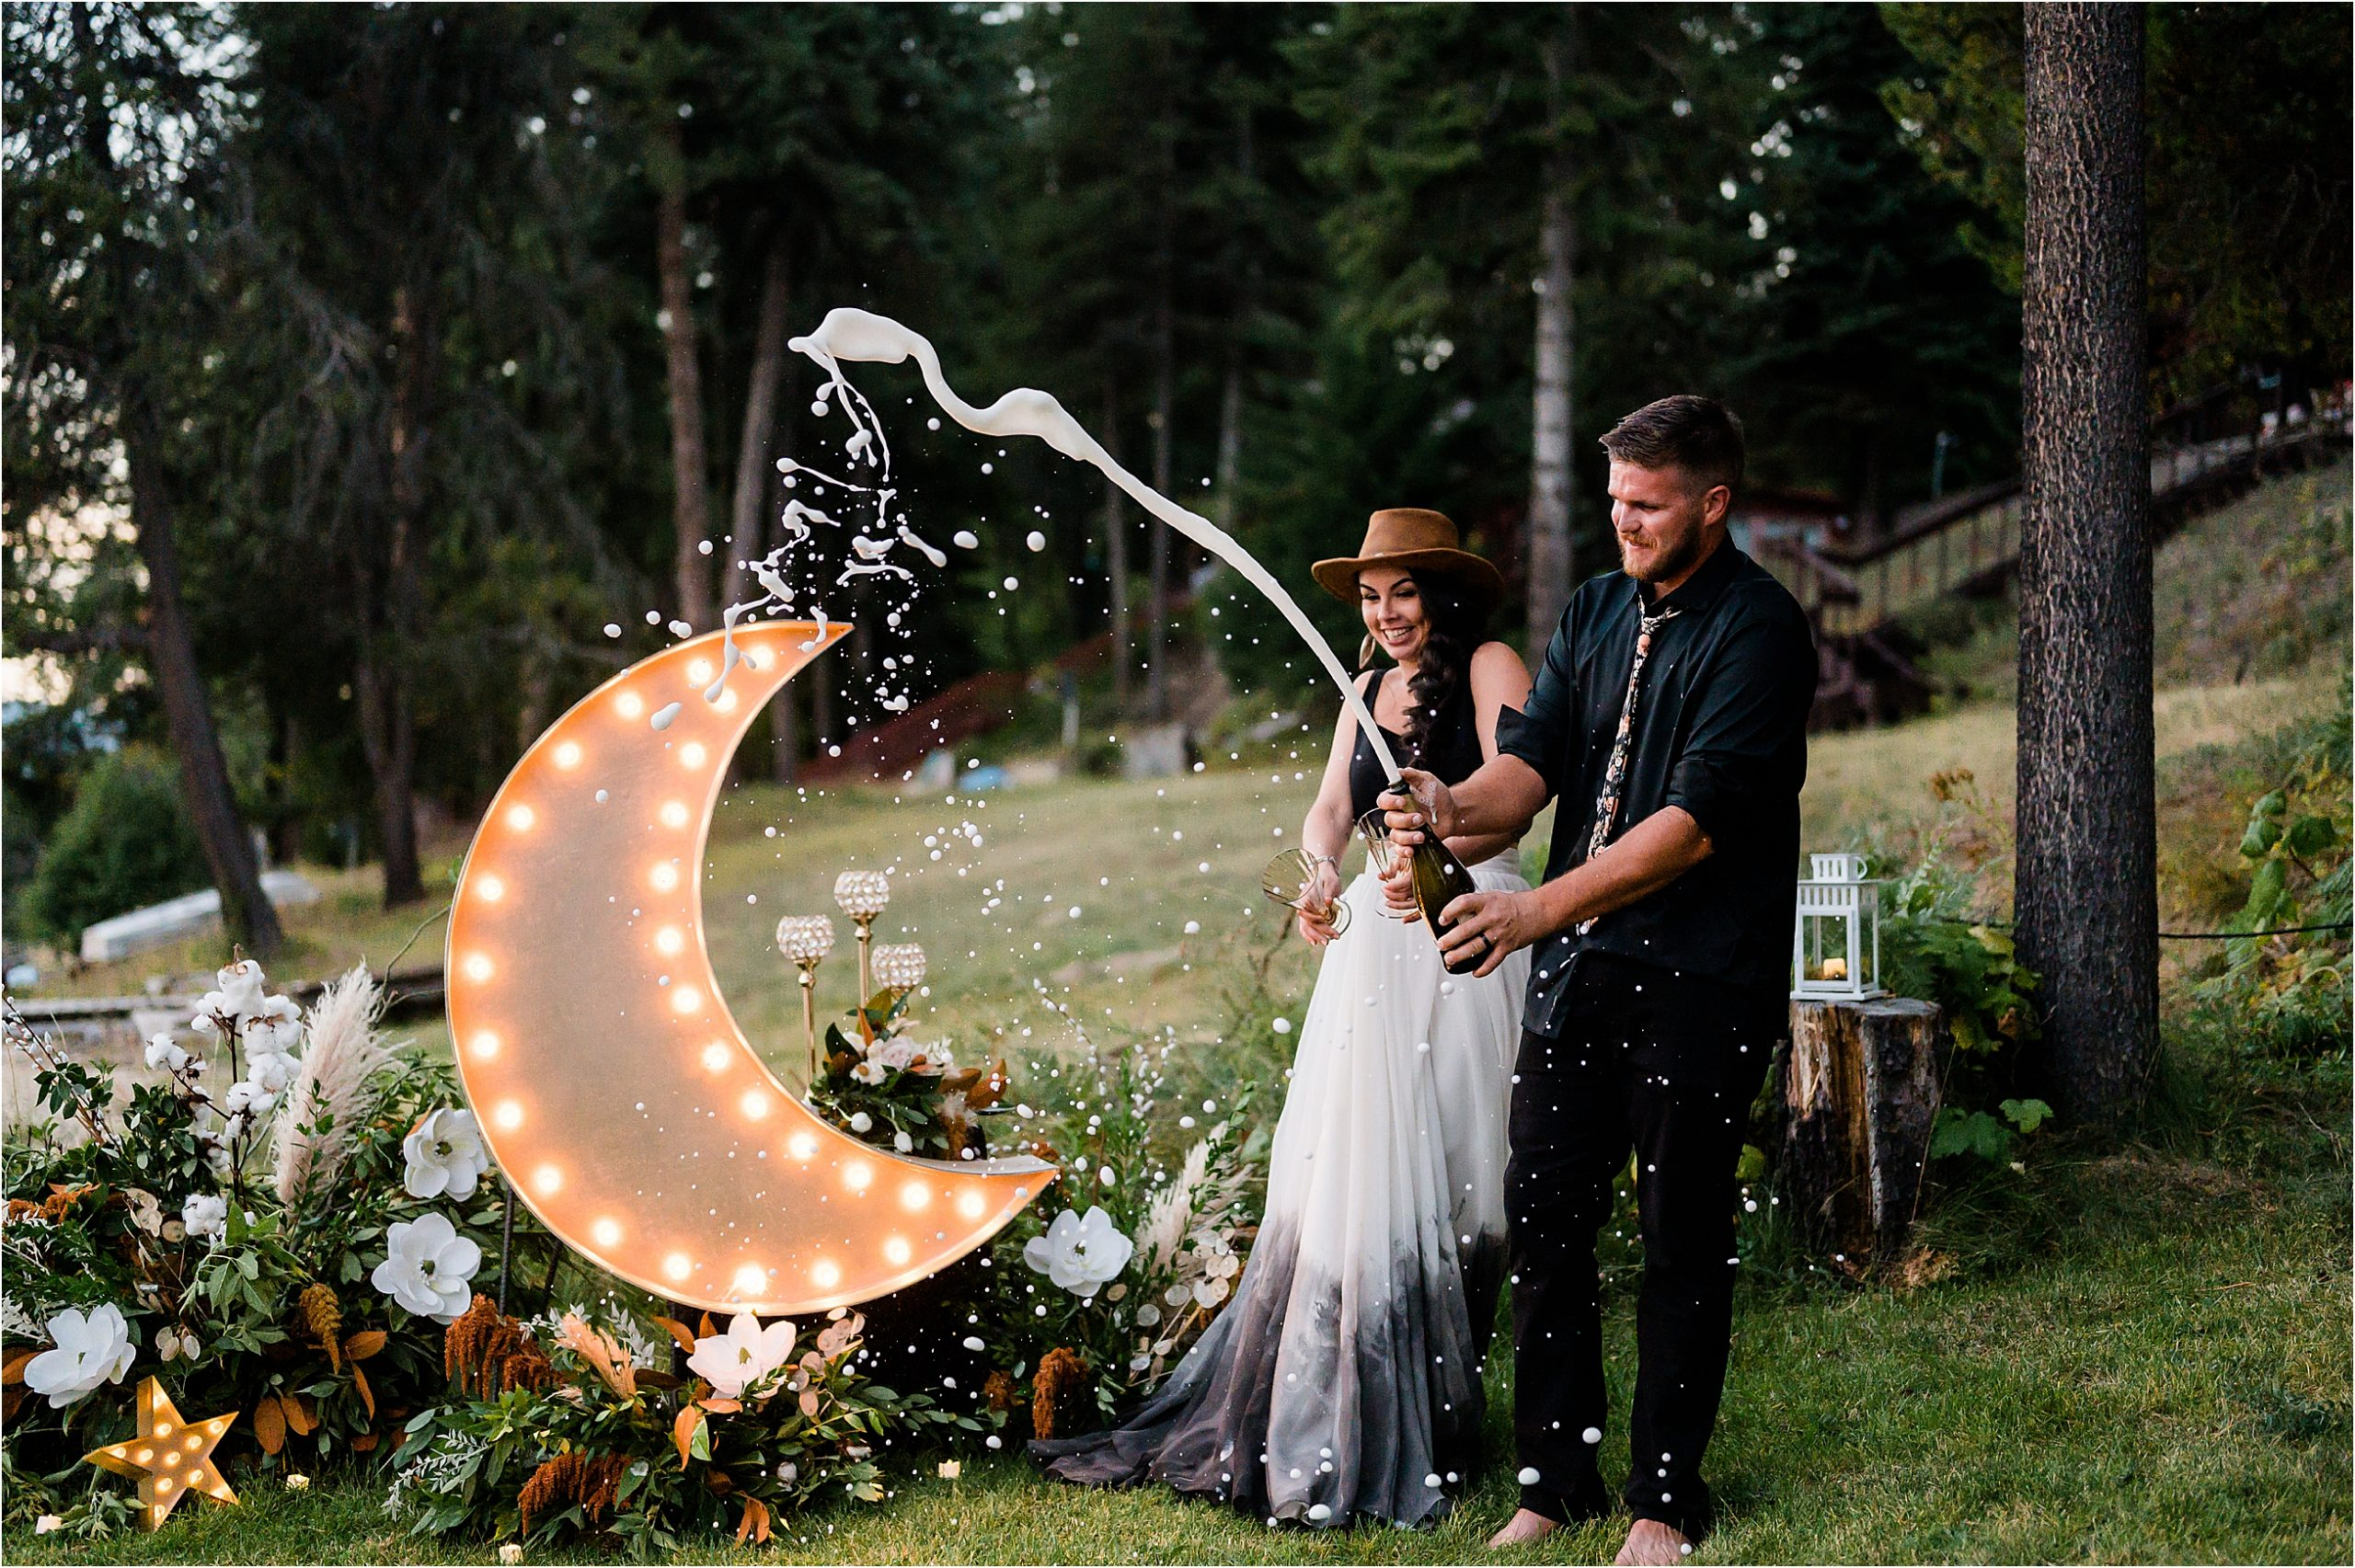 Shelby & Garrett popping some champagne at their backyard barbeque dinner on their elopement day. Image by Forthright Photo.